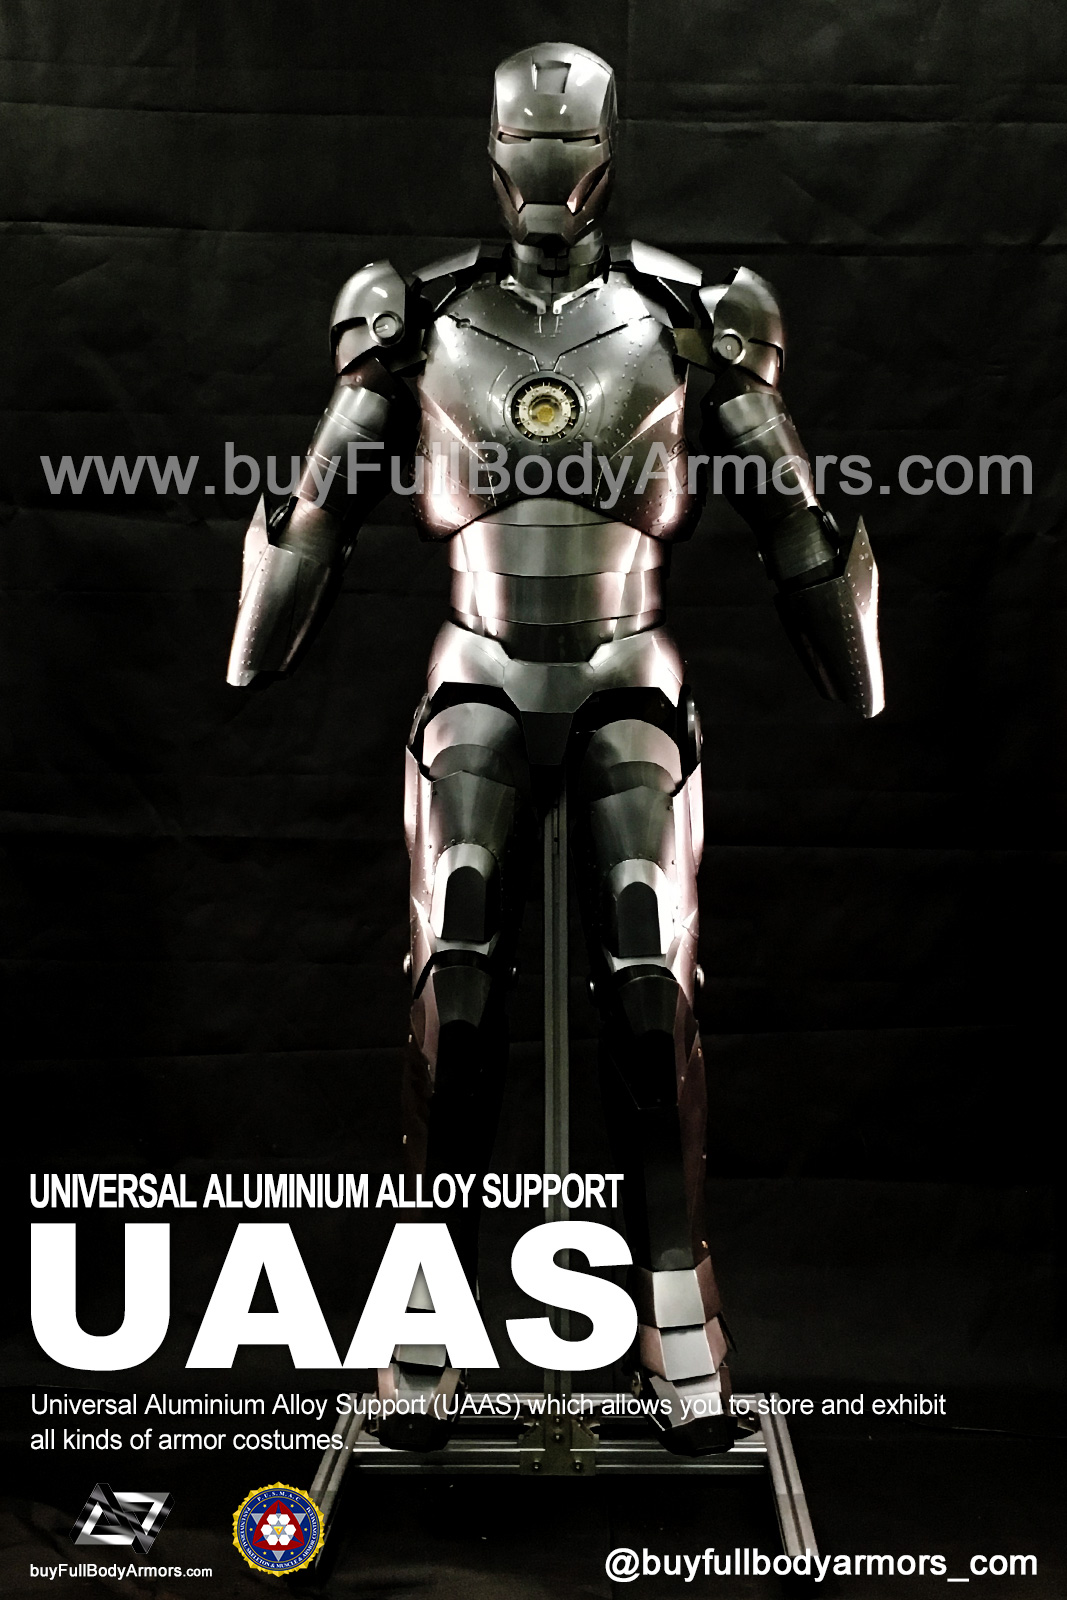 Put a Iron Man Mark II 2 Armor Costume on to a Universal Aluminium Alloy Support (UAAS) 5